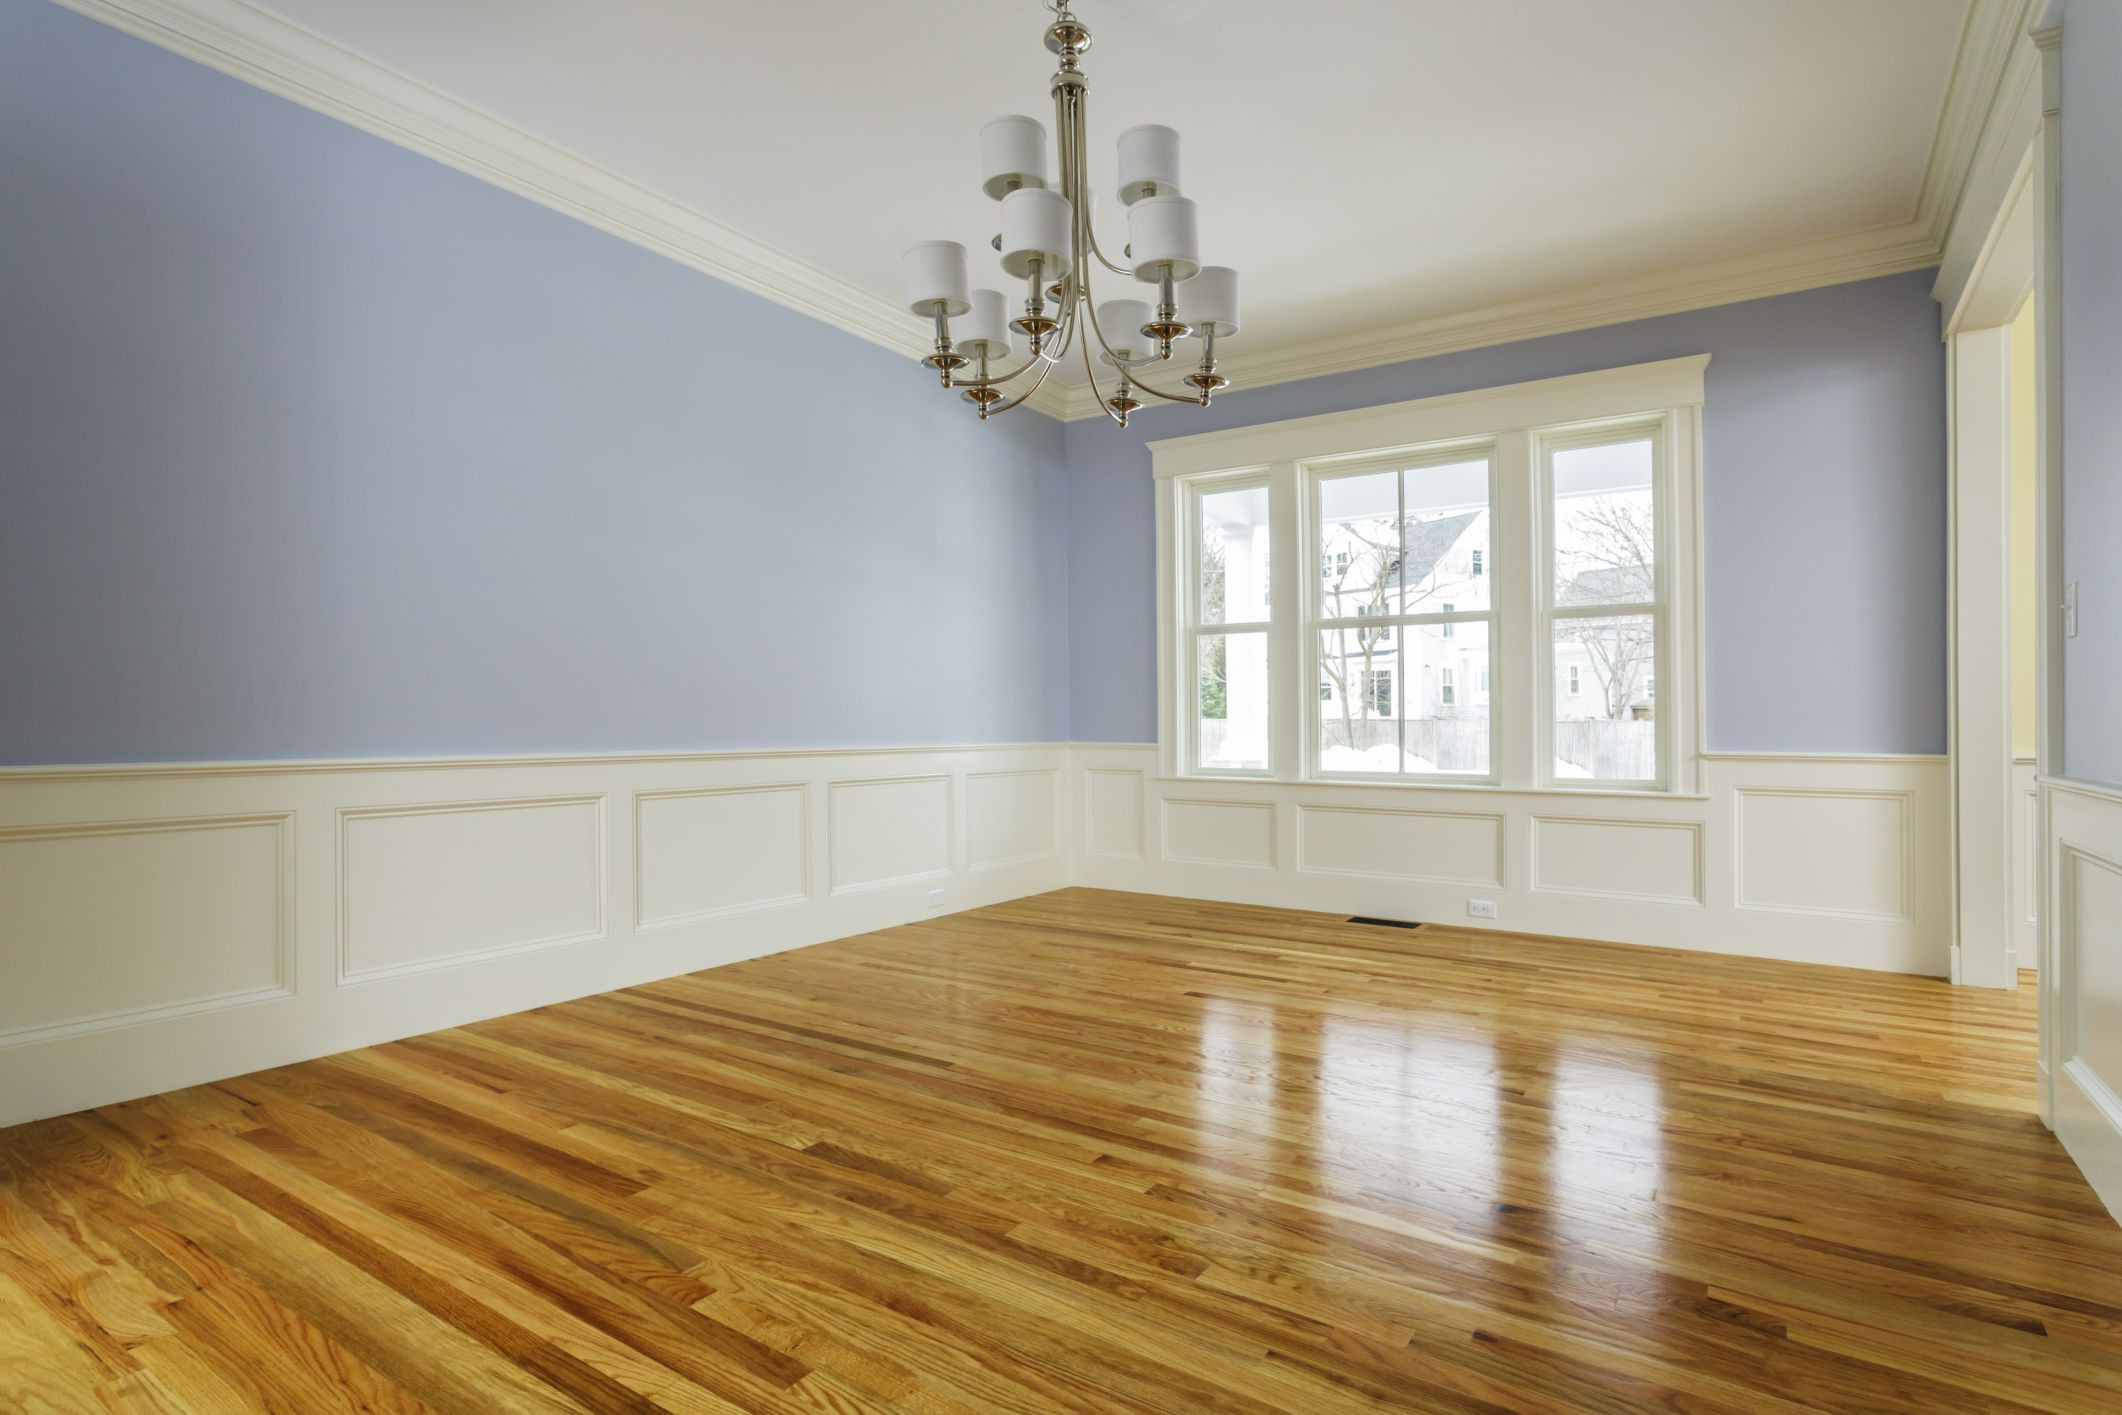 hardwood floor price estimator of the cost to refinish hardwood floors throughout 168686572 highres 56a2fd773df78cf7727b6cb3